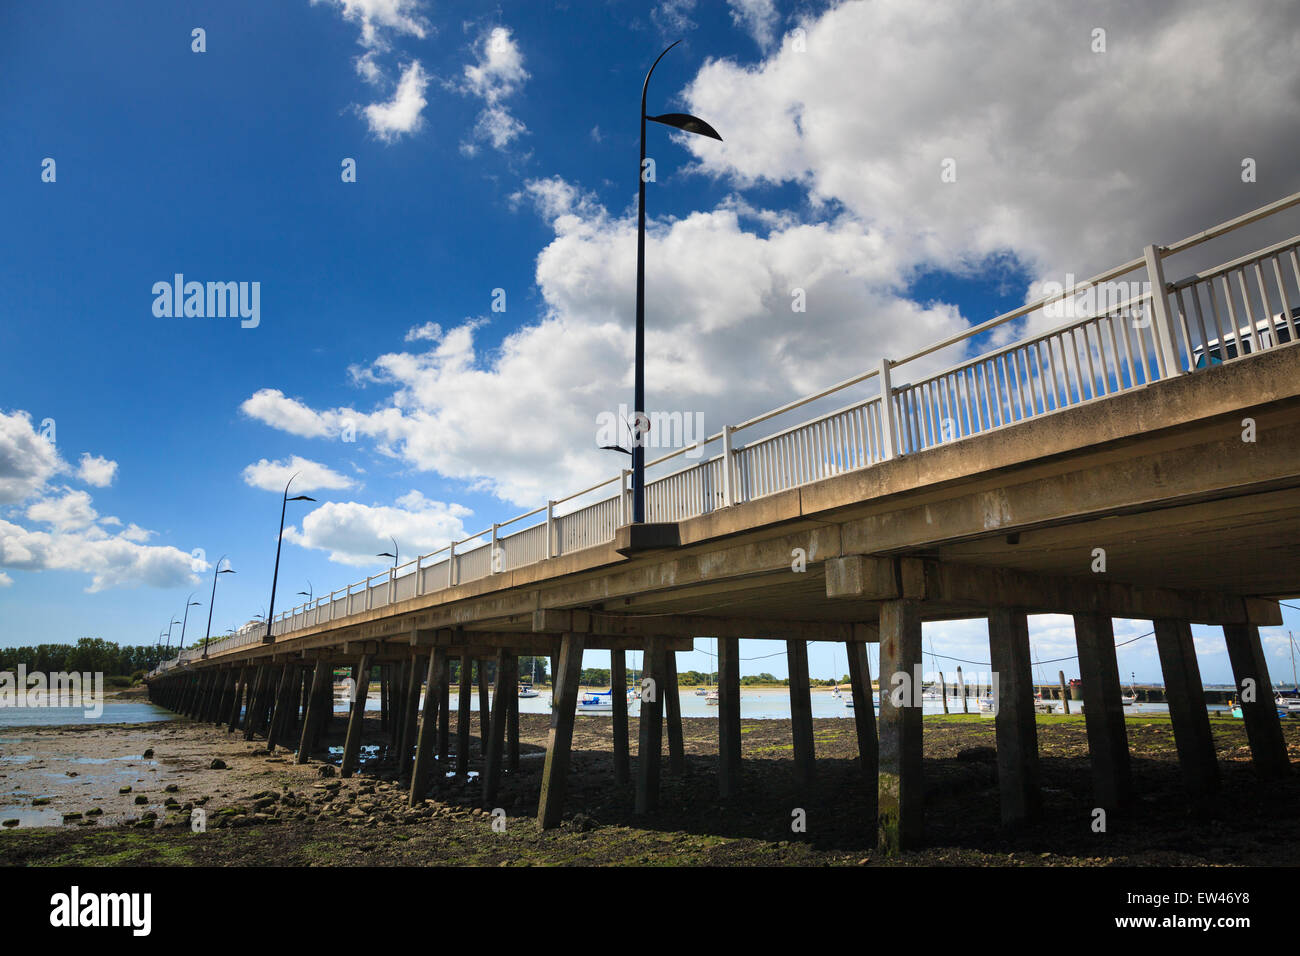 The struts supporting Langstone Bridge from below on a sunny day - Stock Image